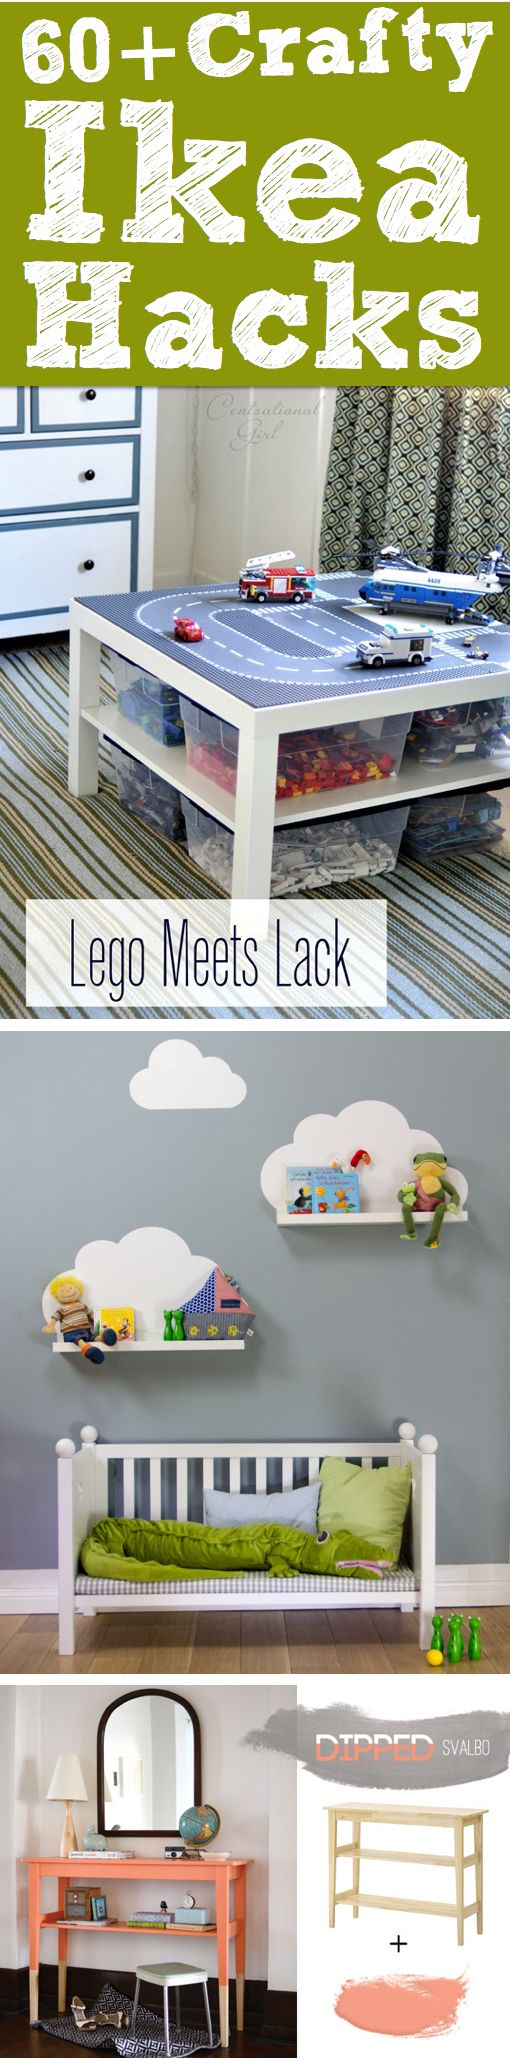 60++Crafty+Ikea+Hacks+To+Help+You+Save+Time+And+Money! Lego table/storage and the padded storage cubes for